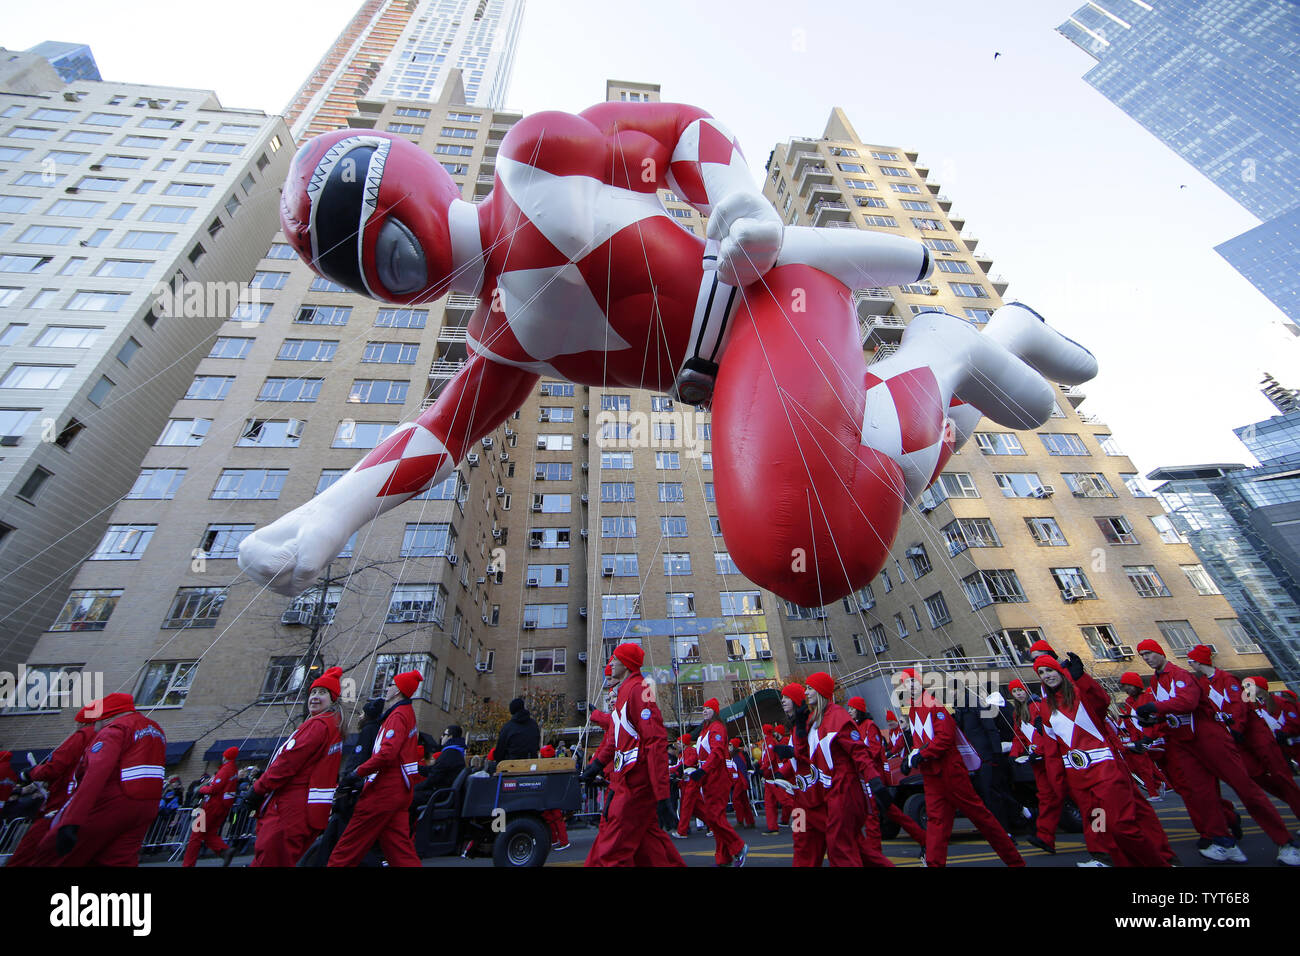 Saban's Mighty Morphin Power Ranger Balloon moves down the parade route at the 91st Macy's Thanksgiving Day Parade in New York City on November 23, 2017.     Photo by John Angelillo/UPI - Stock Image